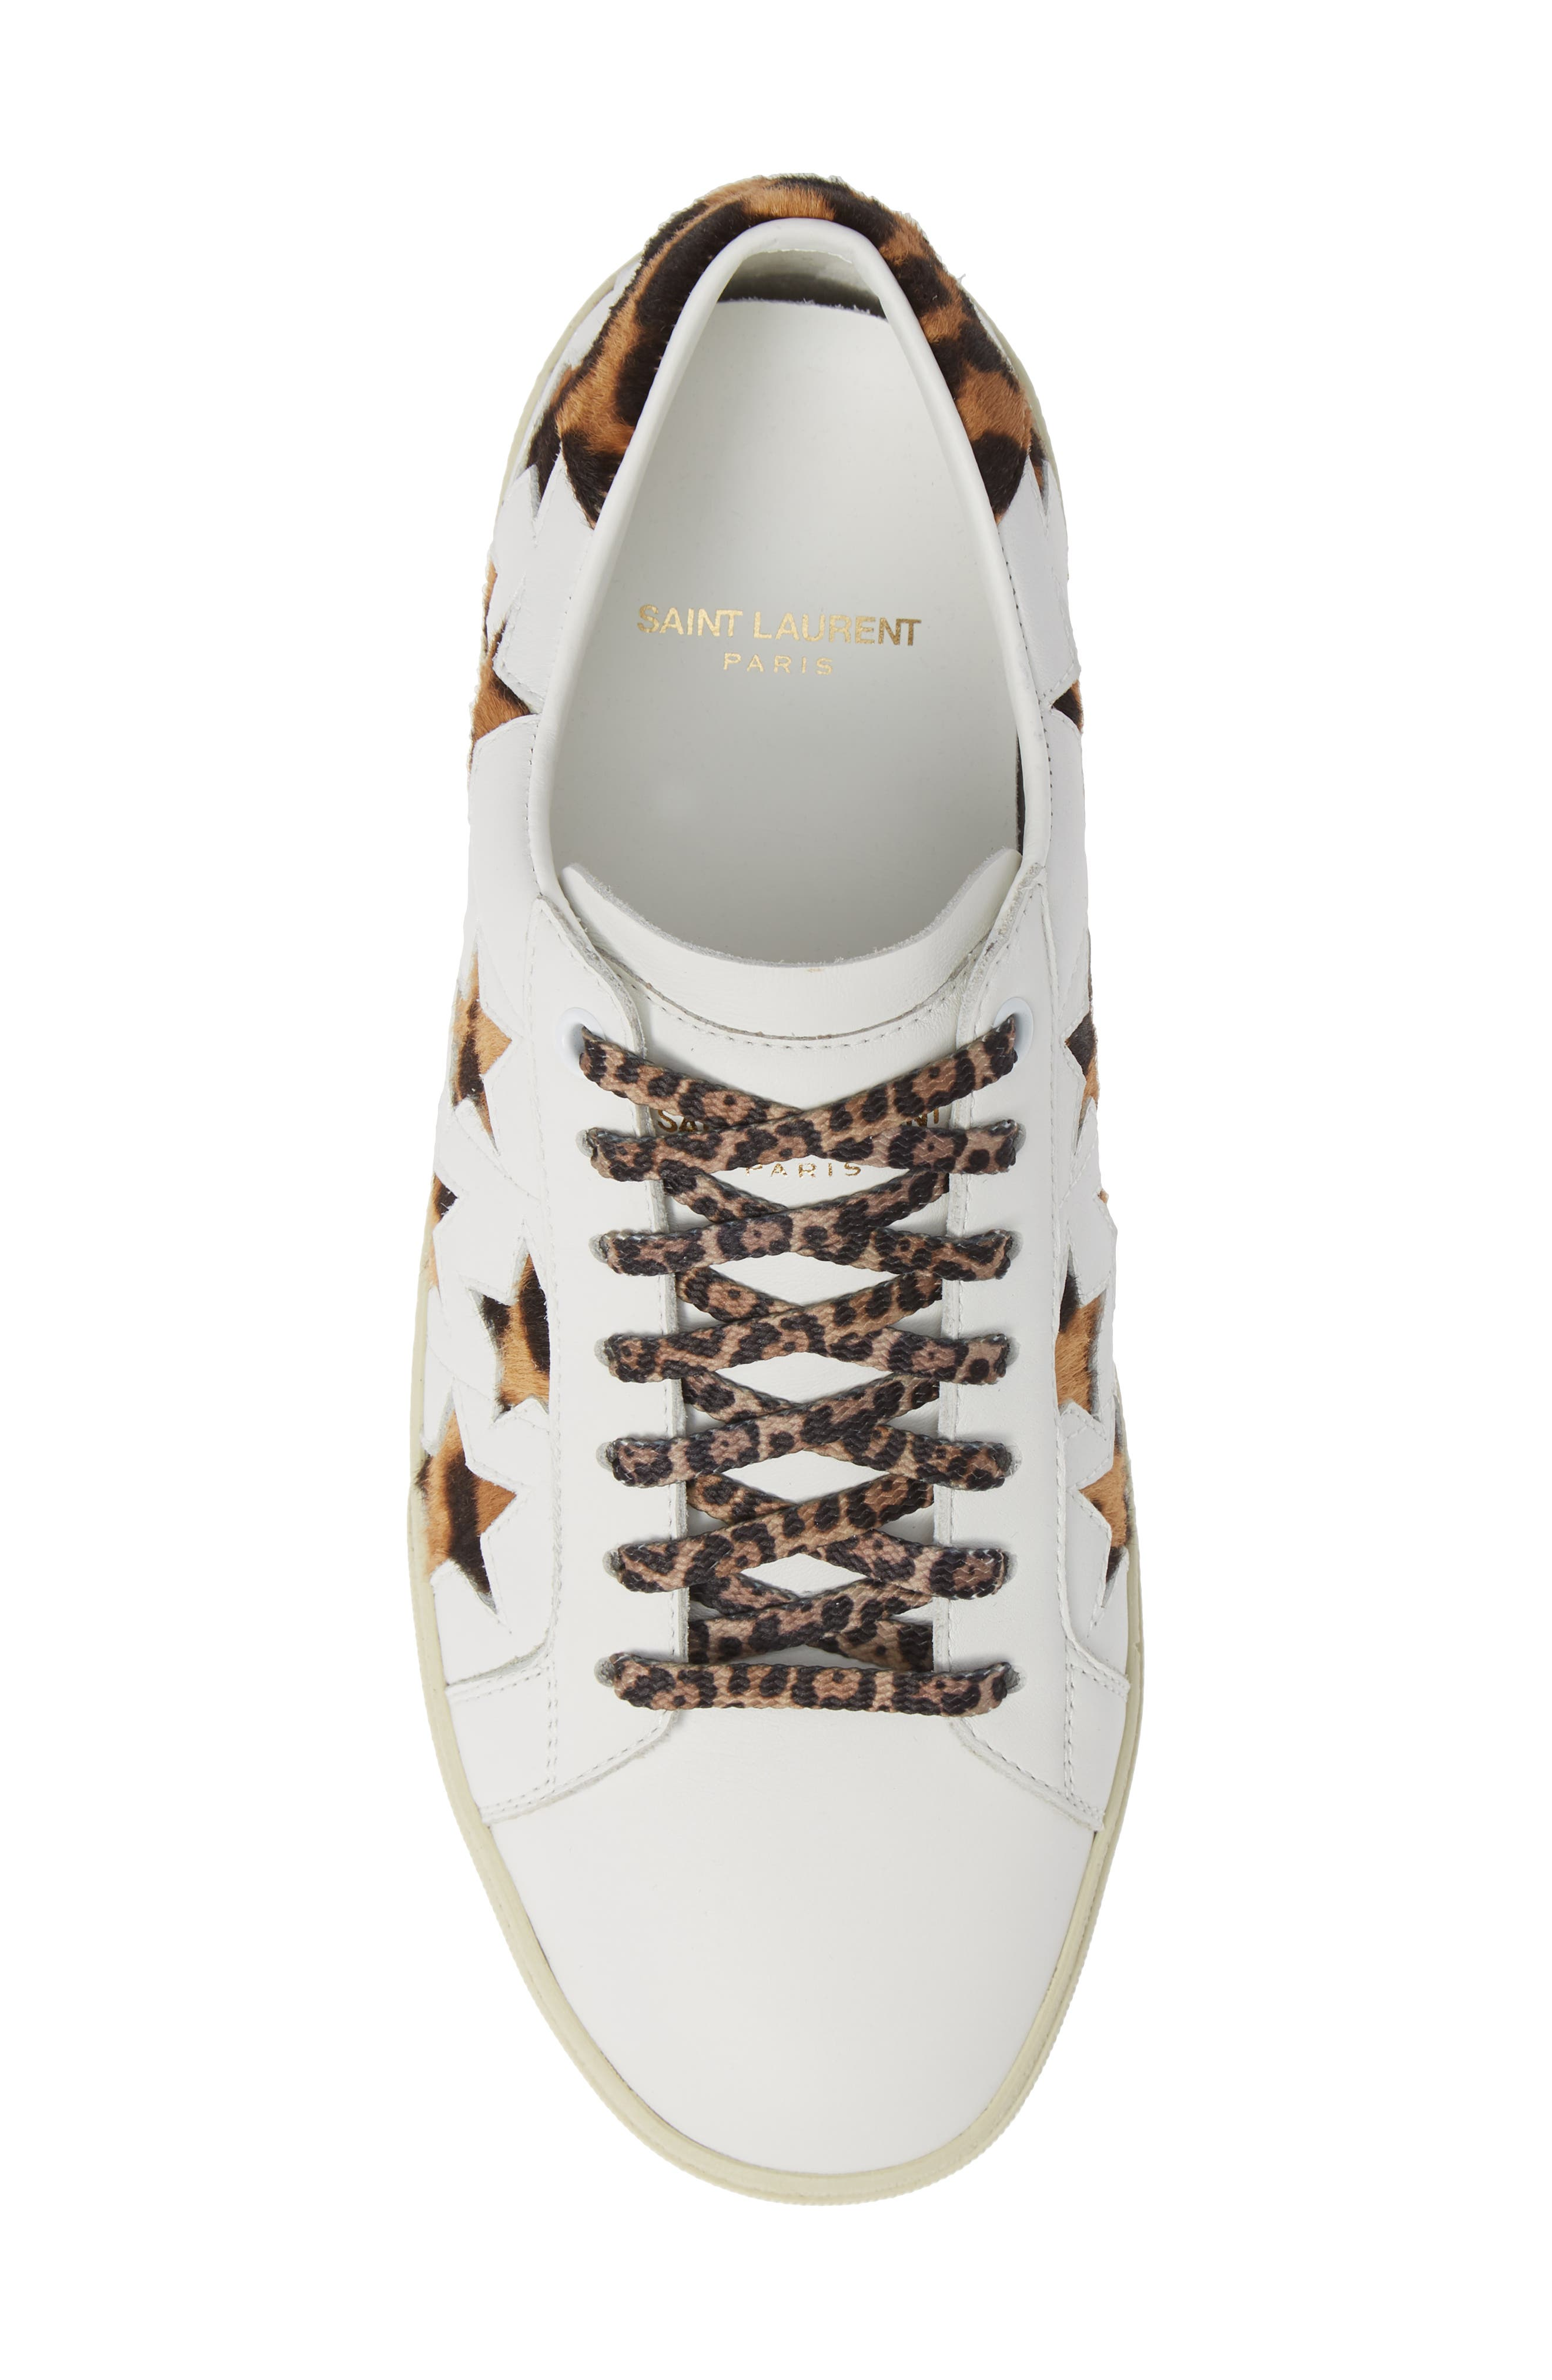 SL06 Genuine Calf Hair Sneaker,                             Alternate thumbnail 5, color,                             BLANC OPTIQUE/ CHAD